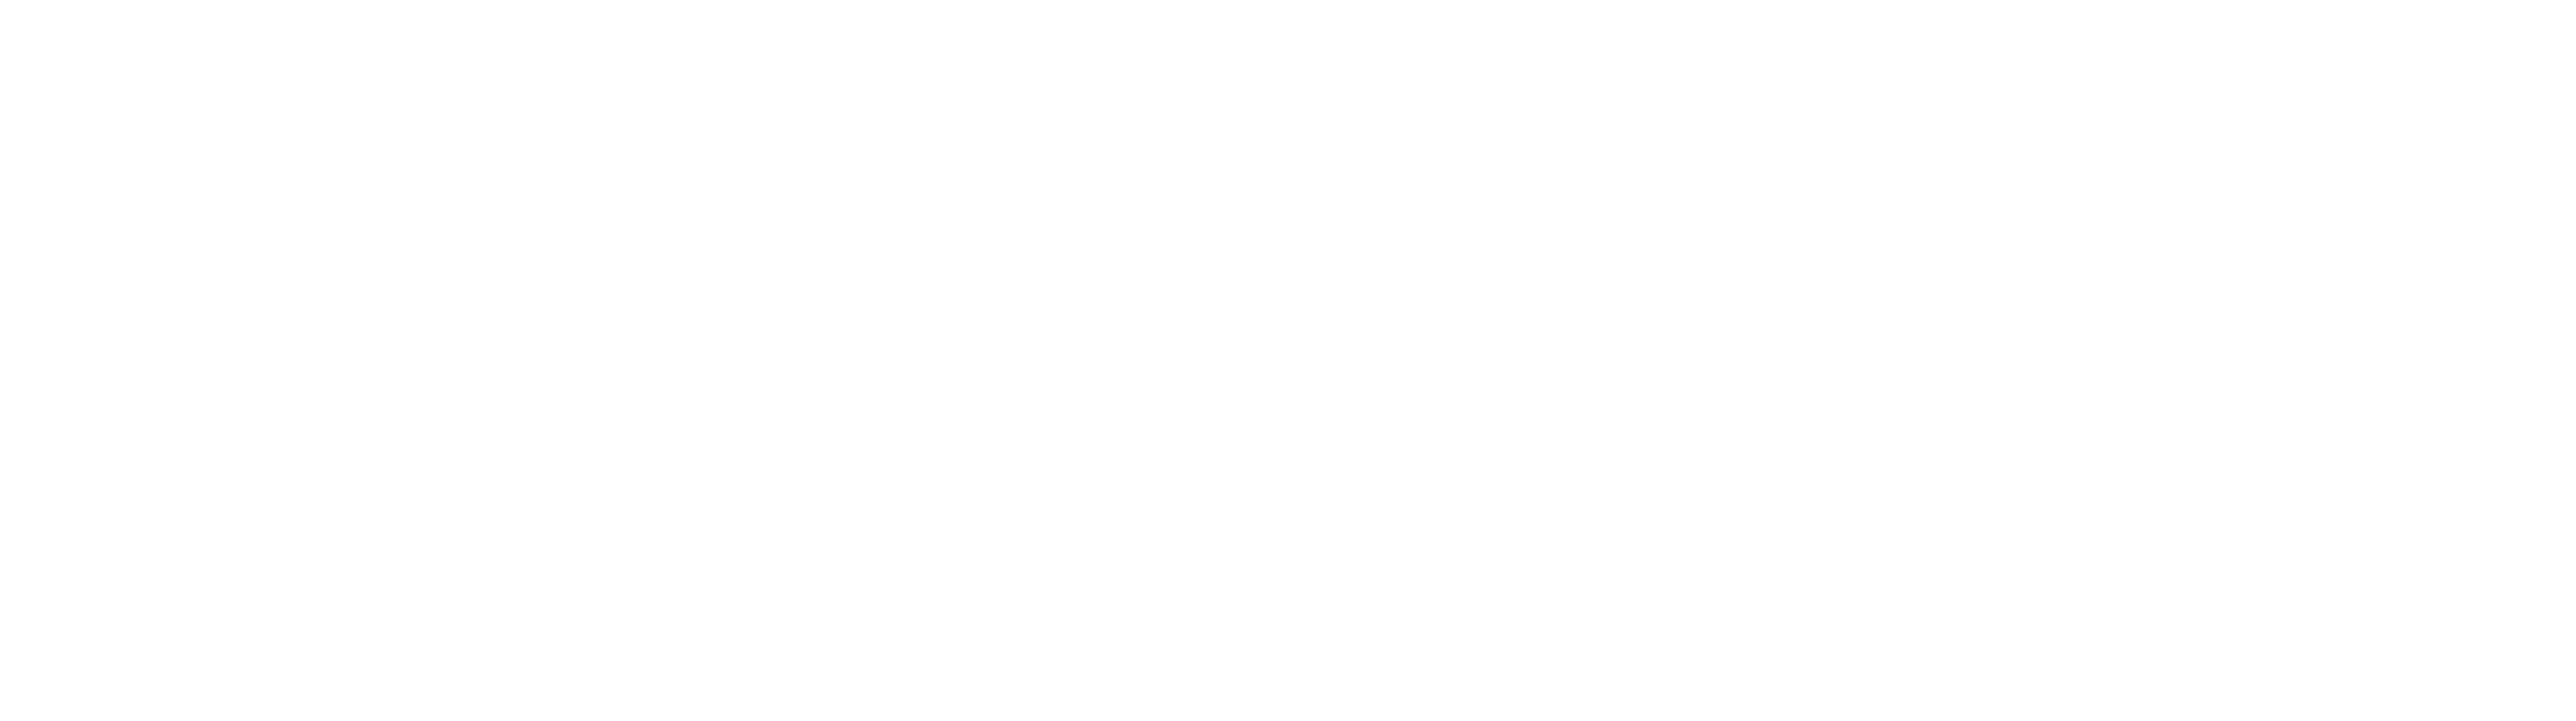 Special Touch Florist - Flower Delivery in Spokane, WA